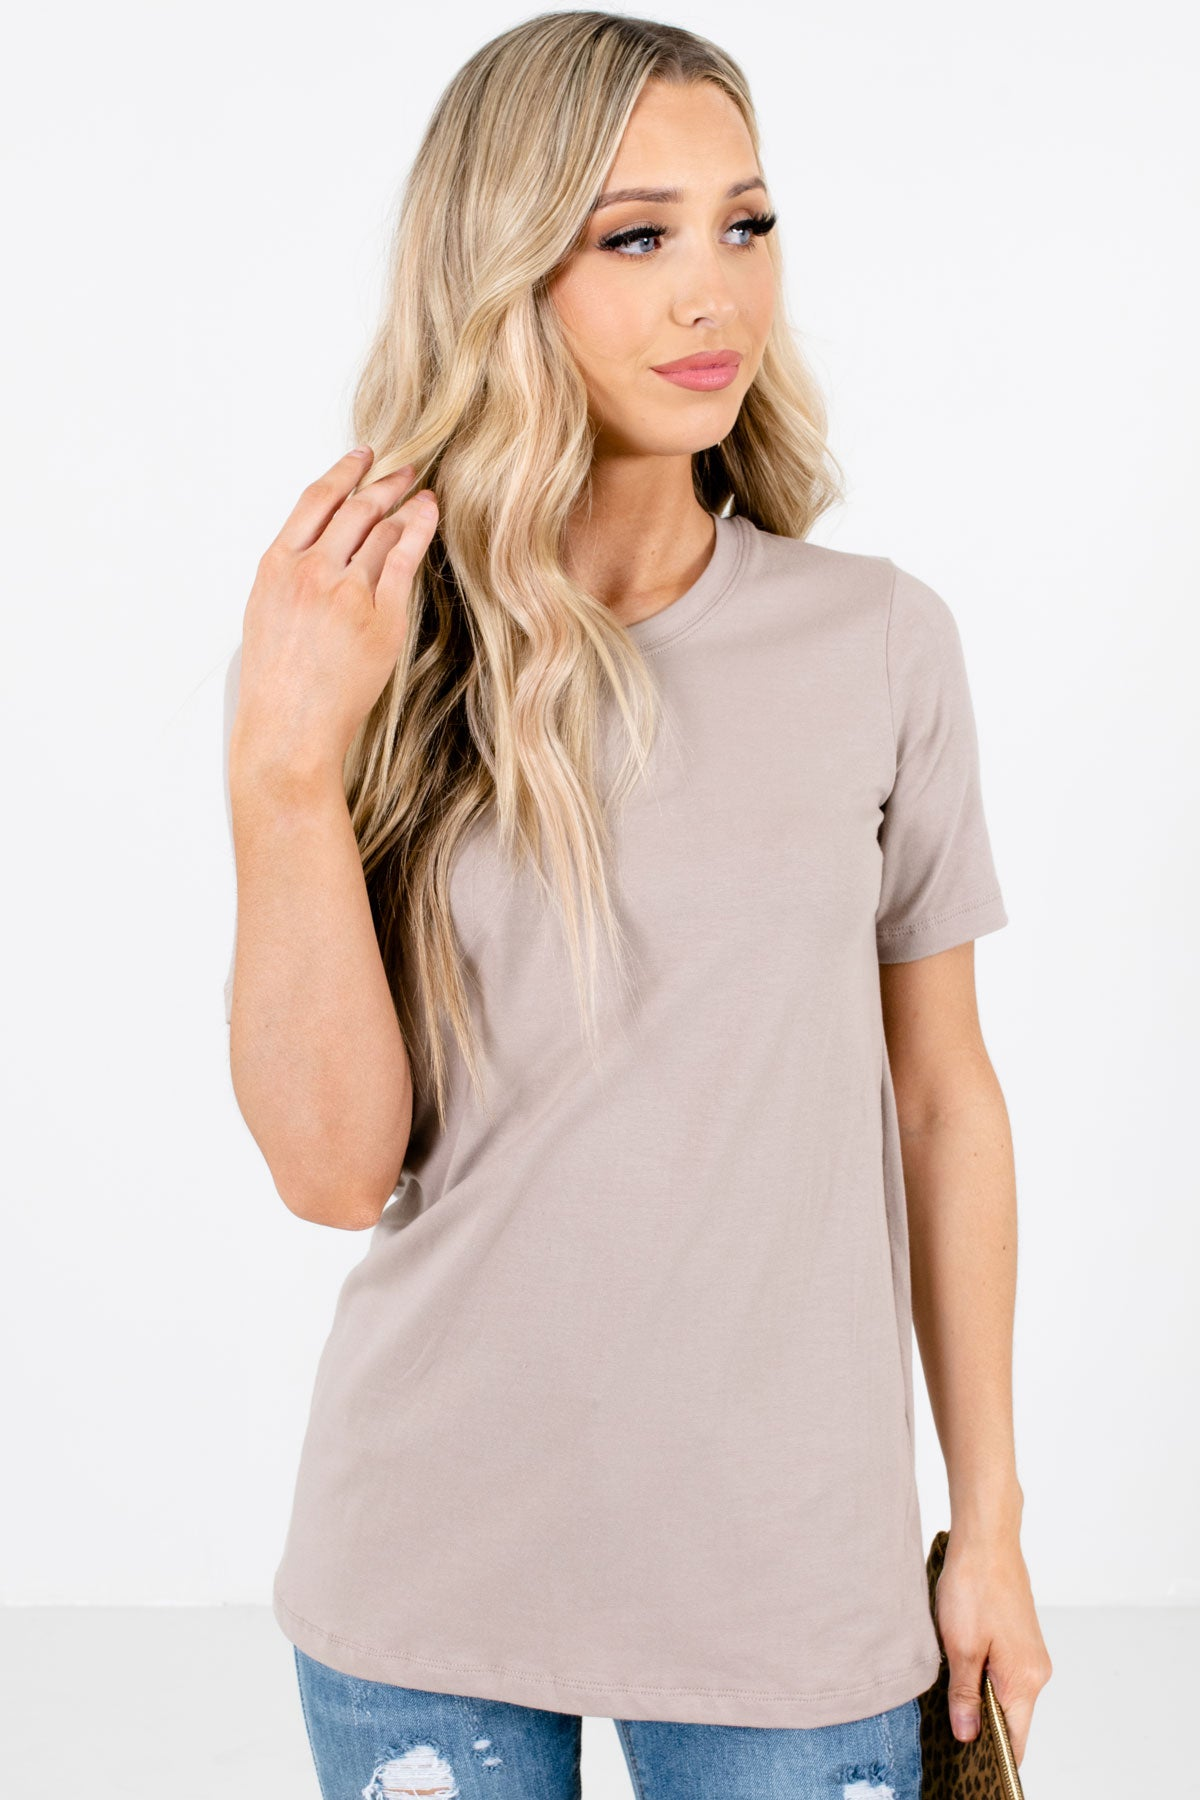 Taupe Brown Round Neckline Boutique Tops for Women